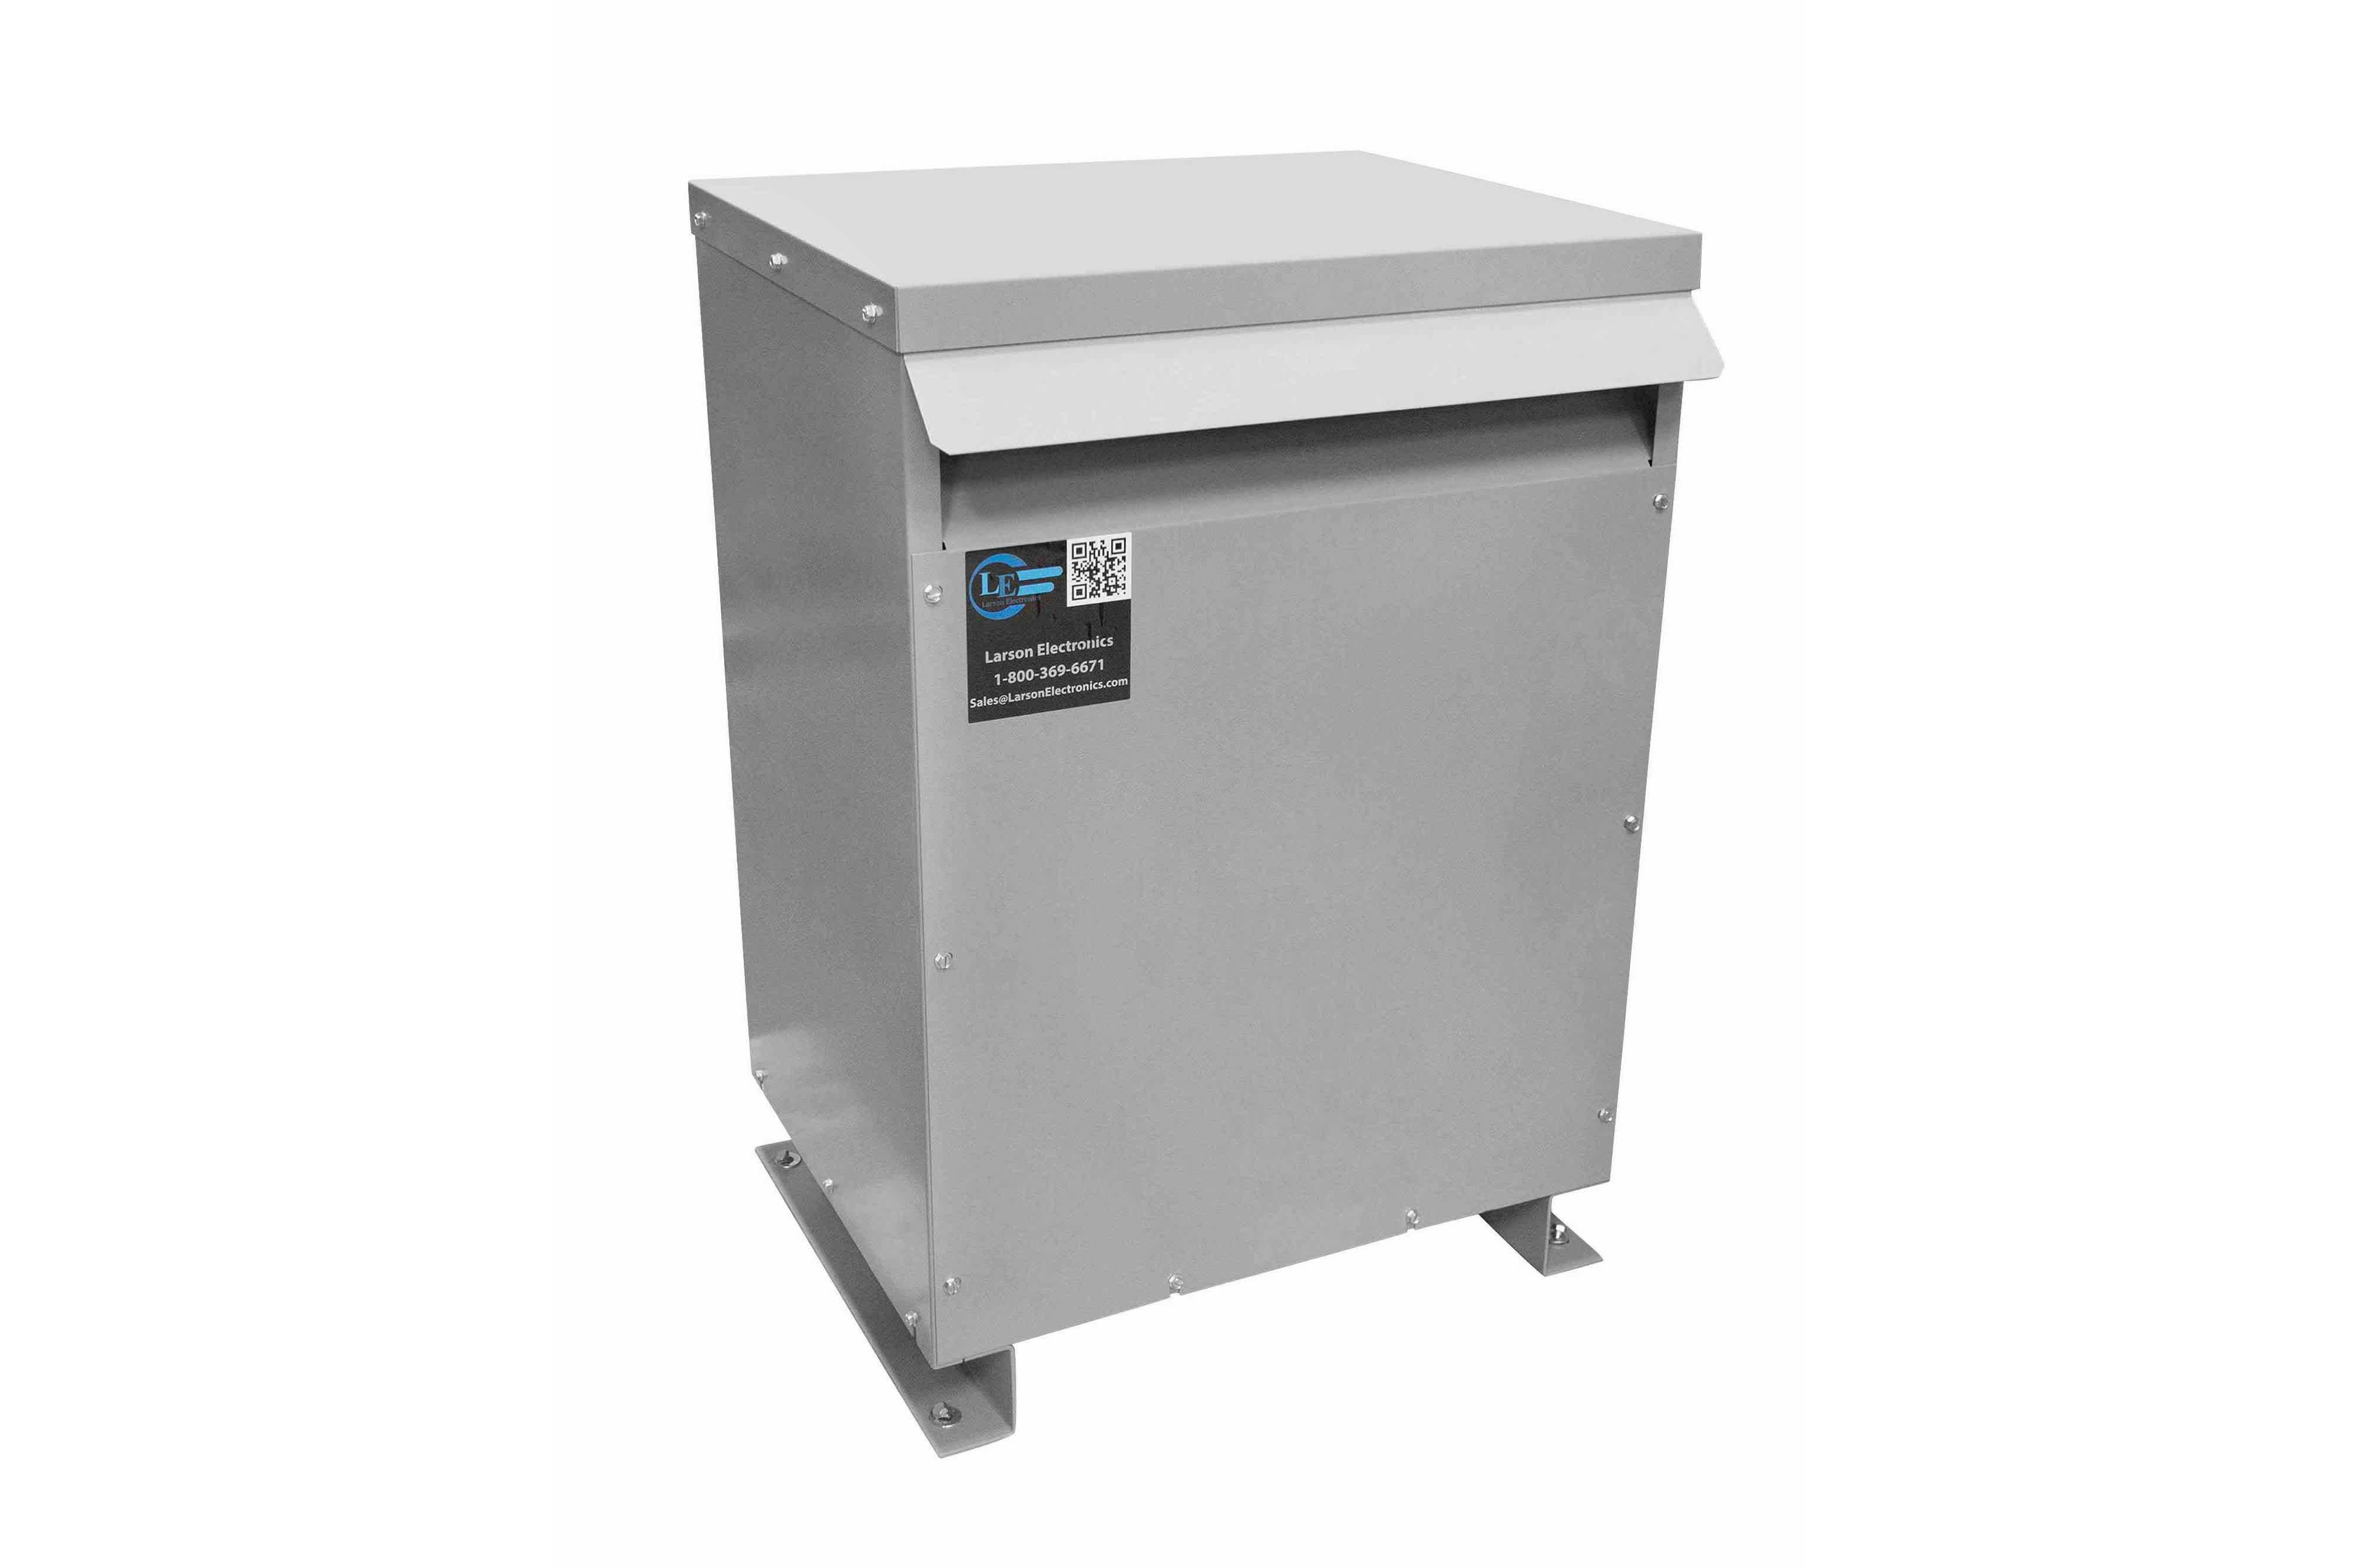 90 kVA 3PH Isolation Transformer, 460V Wye Primary, 600Y/347 Wye-N Secondary, N3R, Ventilated, 60 Hz